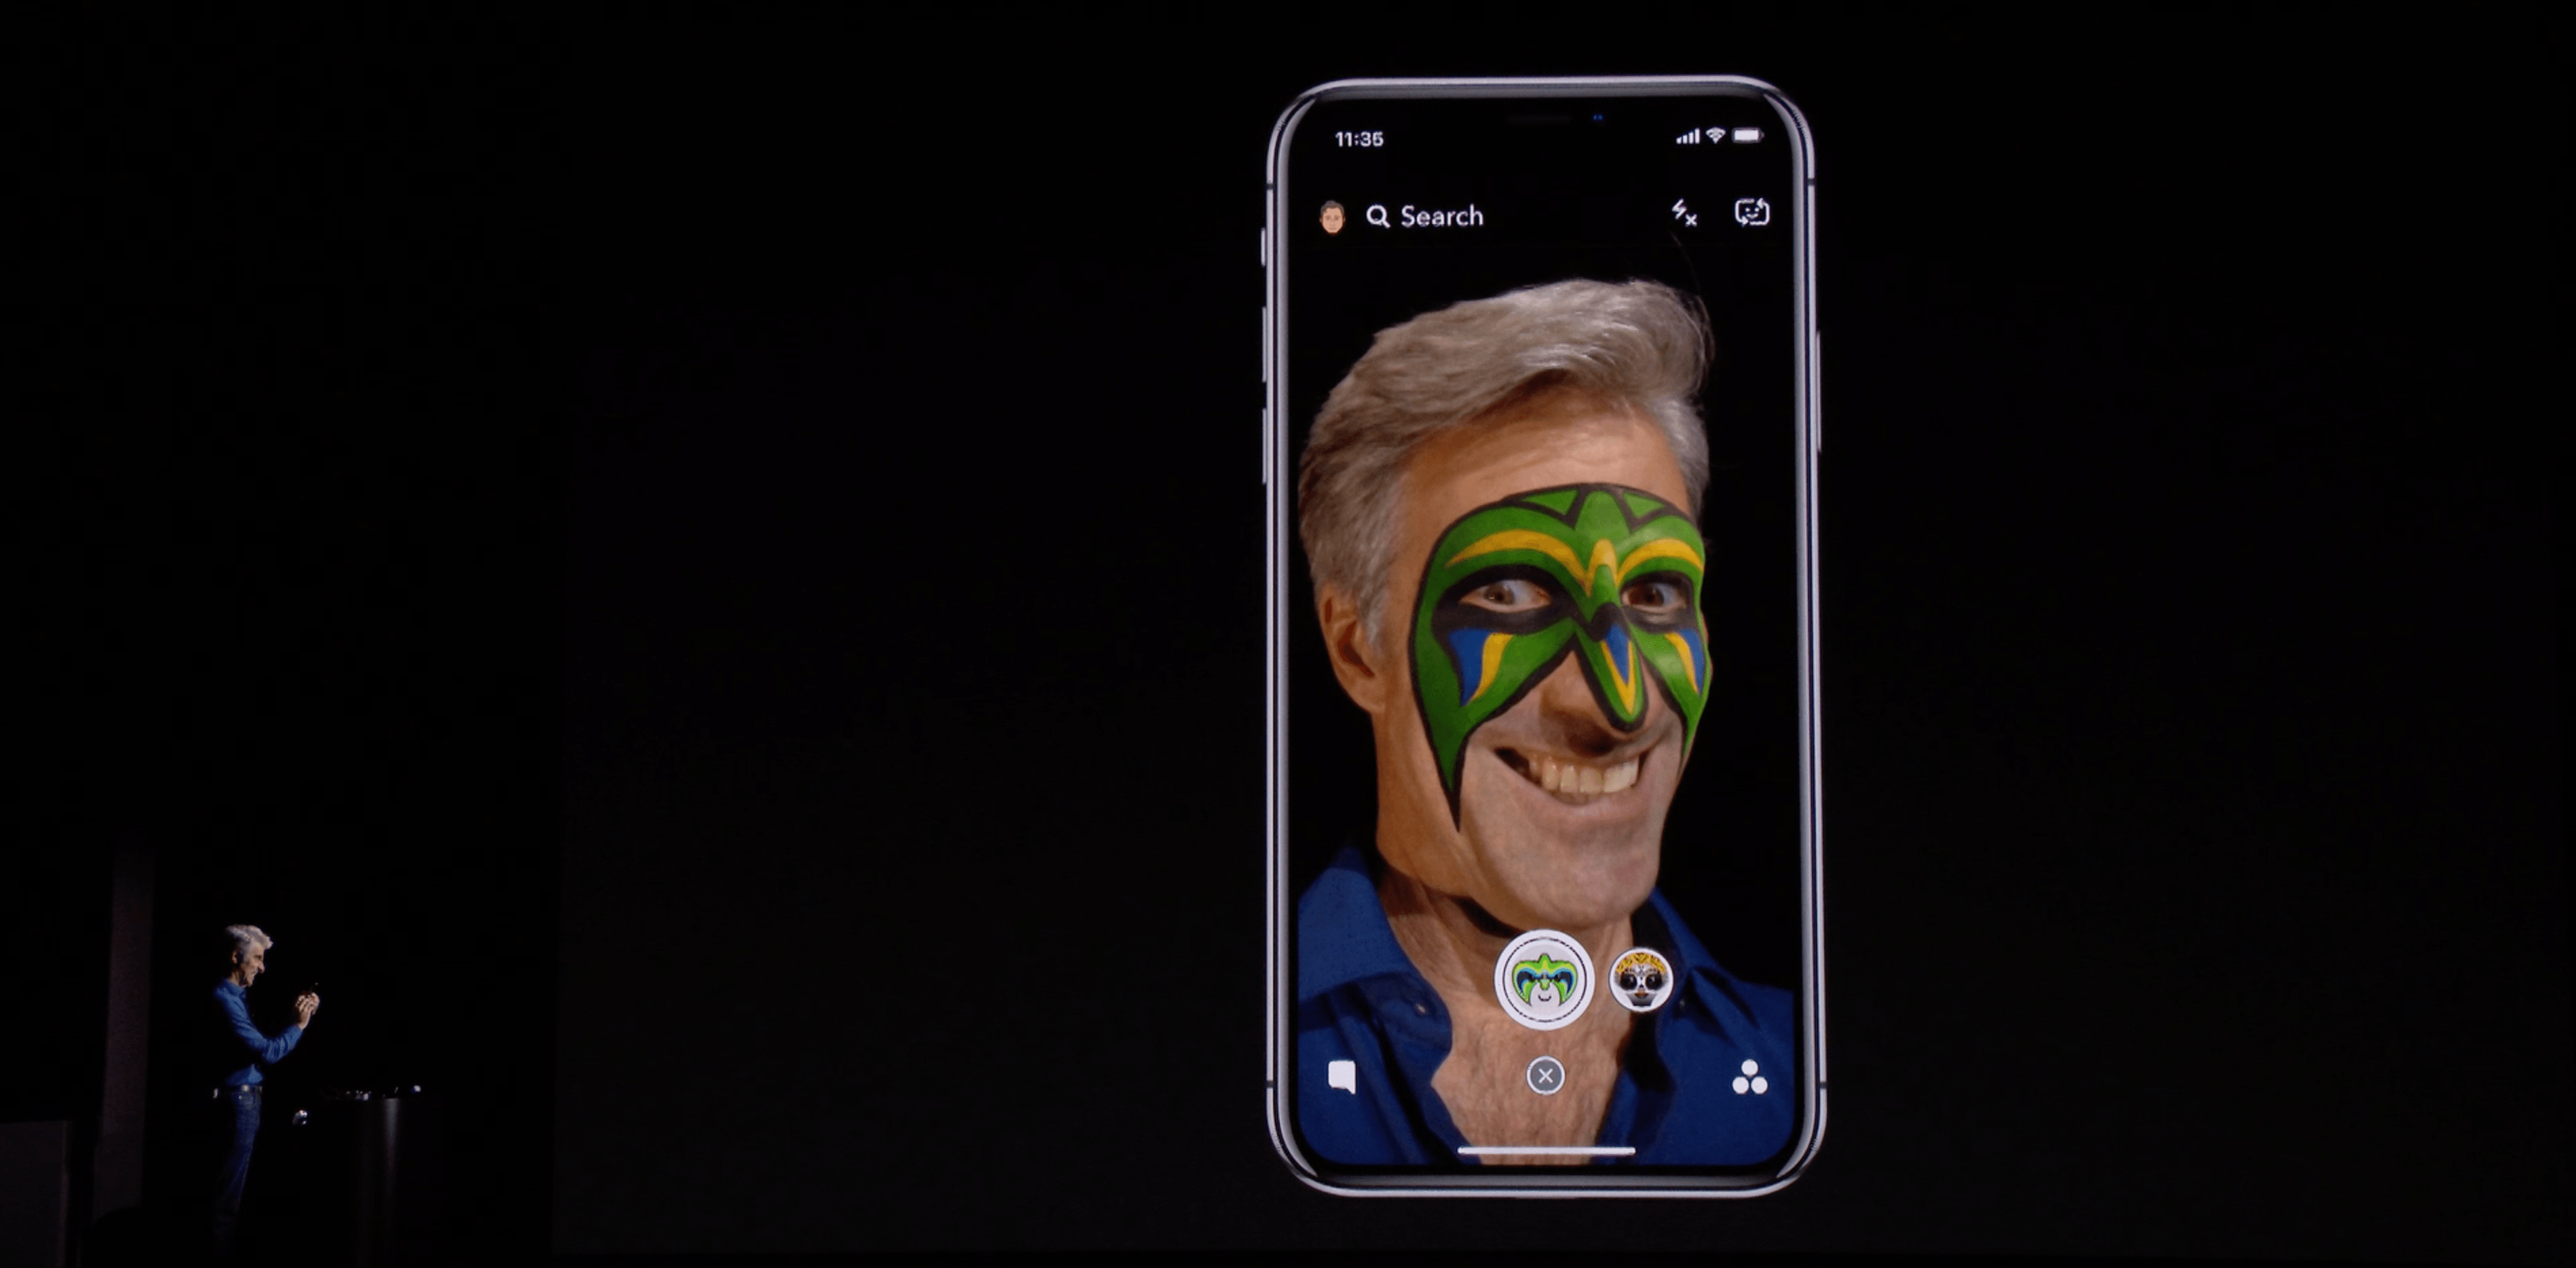 Craig Federighi demonstrating Snapchat Lens filters in September 2017